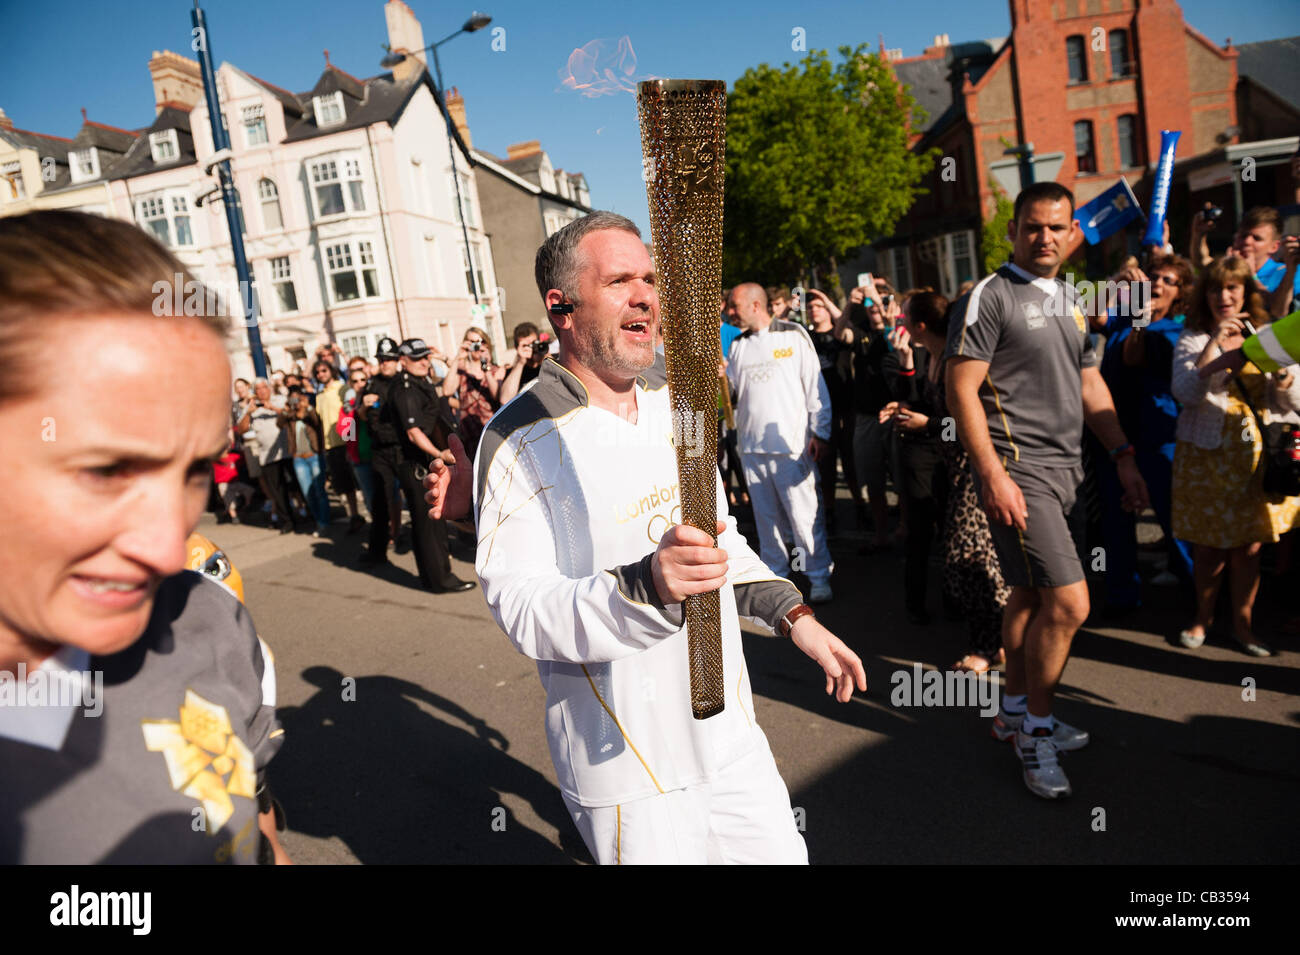 On day 10 of the Olympic torch relay through the United Kingdom, Radio 1 DJ CHRIS MOYLES carries the iconic flaming - Stock Image